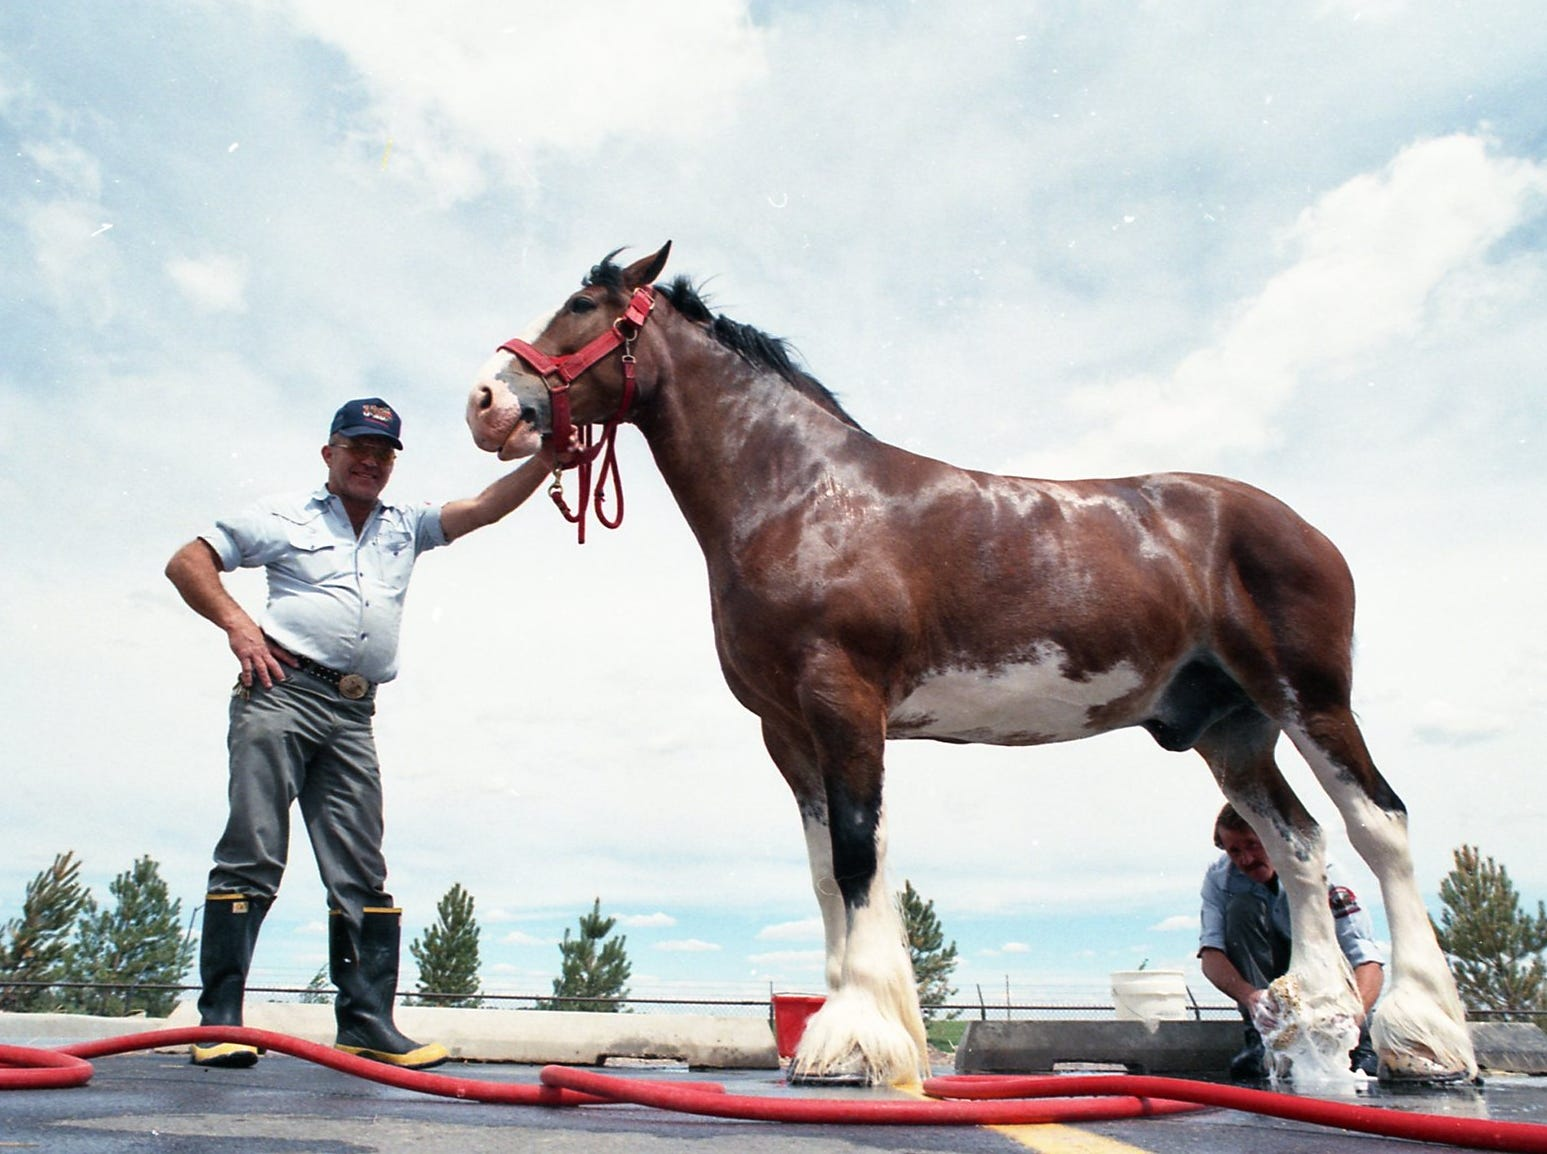 Missed them over Christmas? The Budweiser Clydesdales are back in Fort Collins